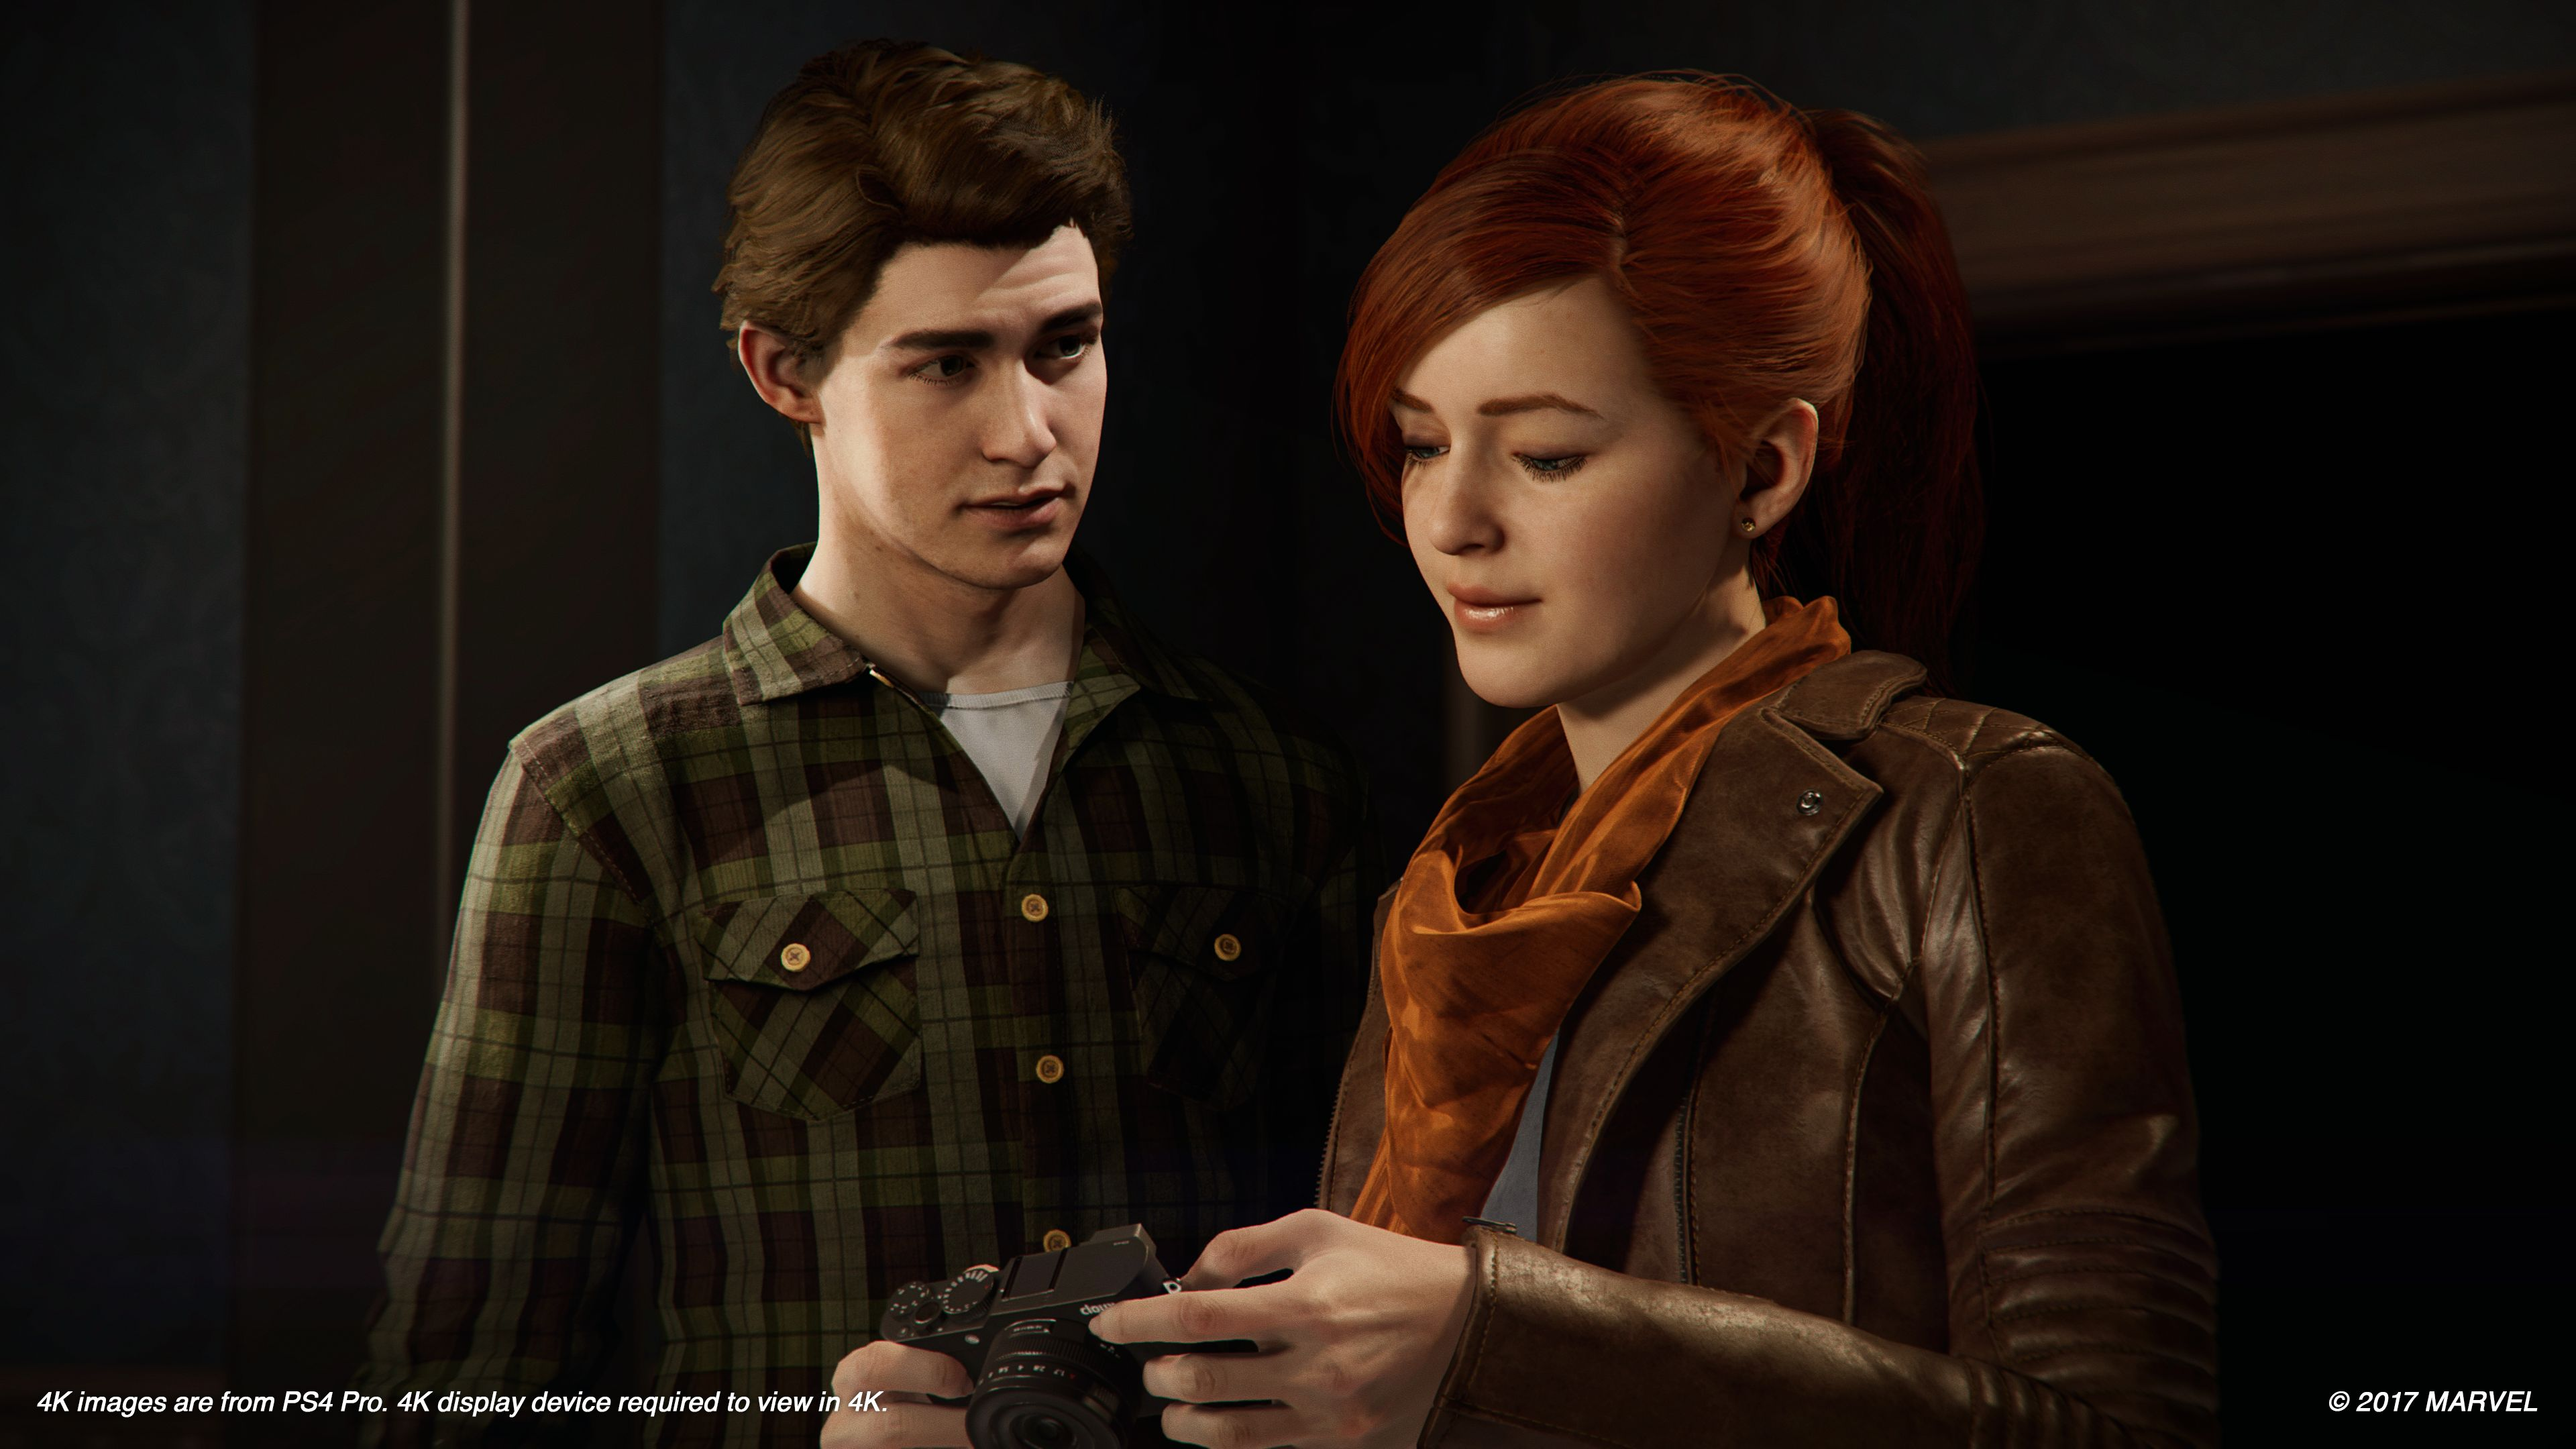 Spider-Man PS4: A breakdown of the game's story